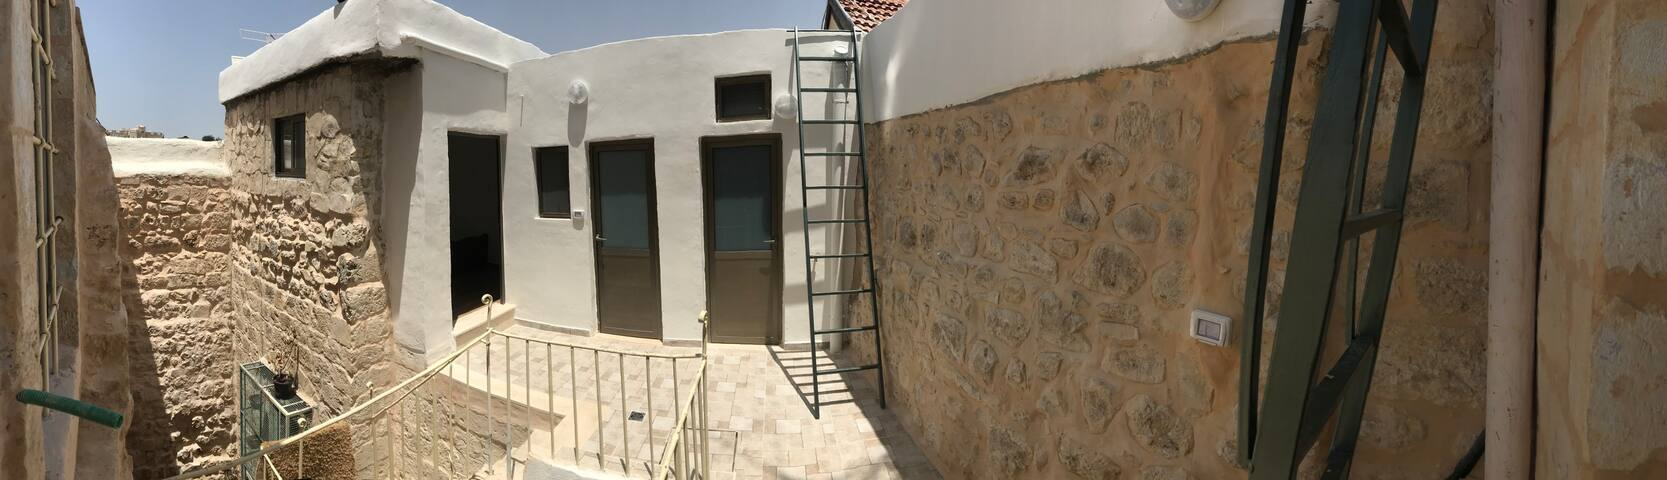 Doors to the private kitchen and bathroom, as well as the ladder to the rooftop seating area